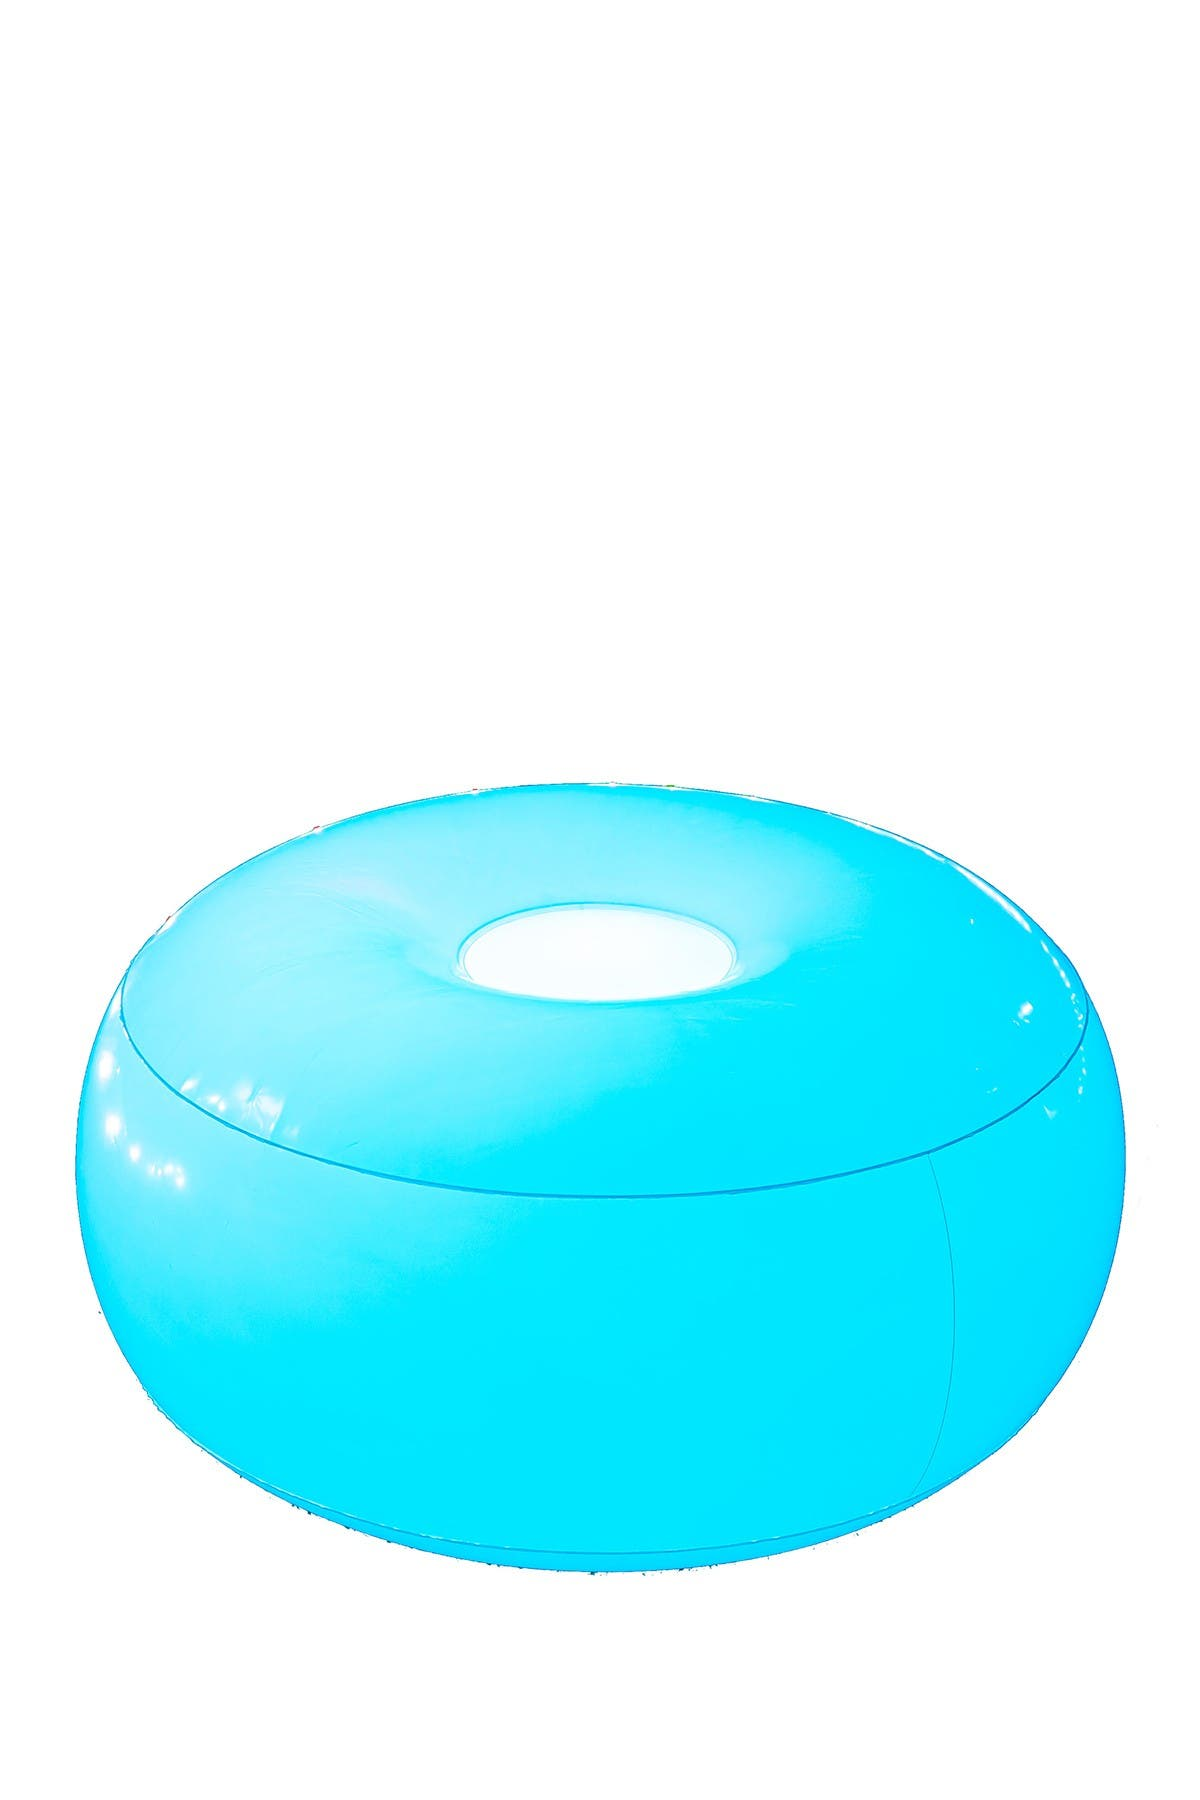 Image of POOLCANDY AirCandy Illuminated LED Inflatable Ottoman